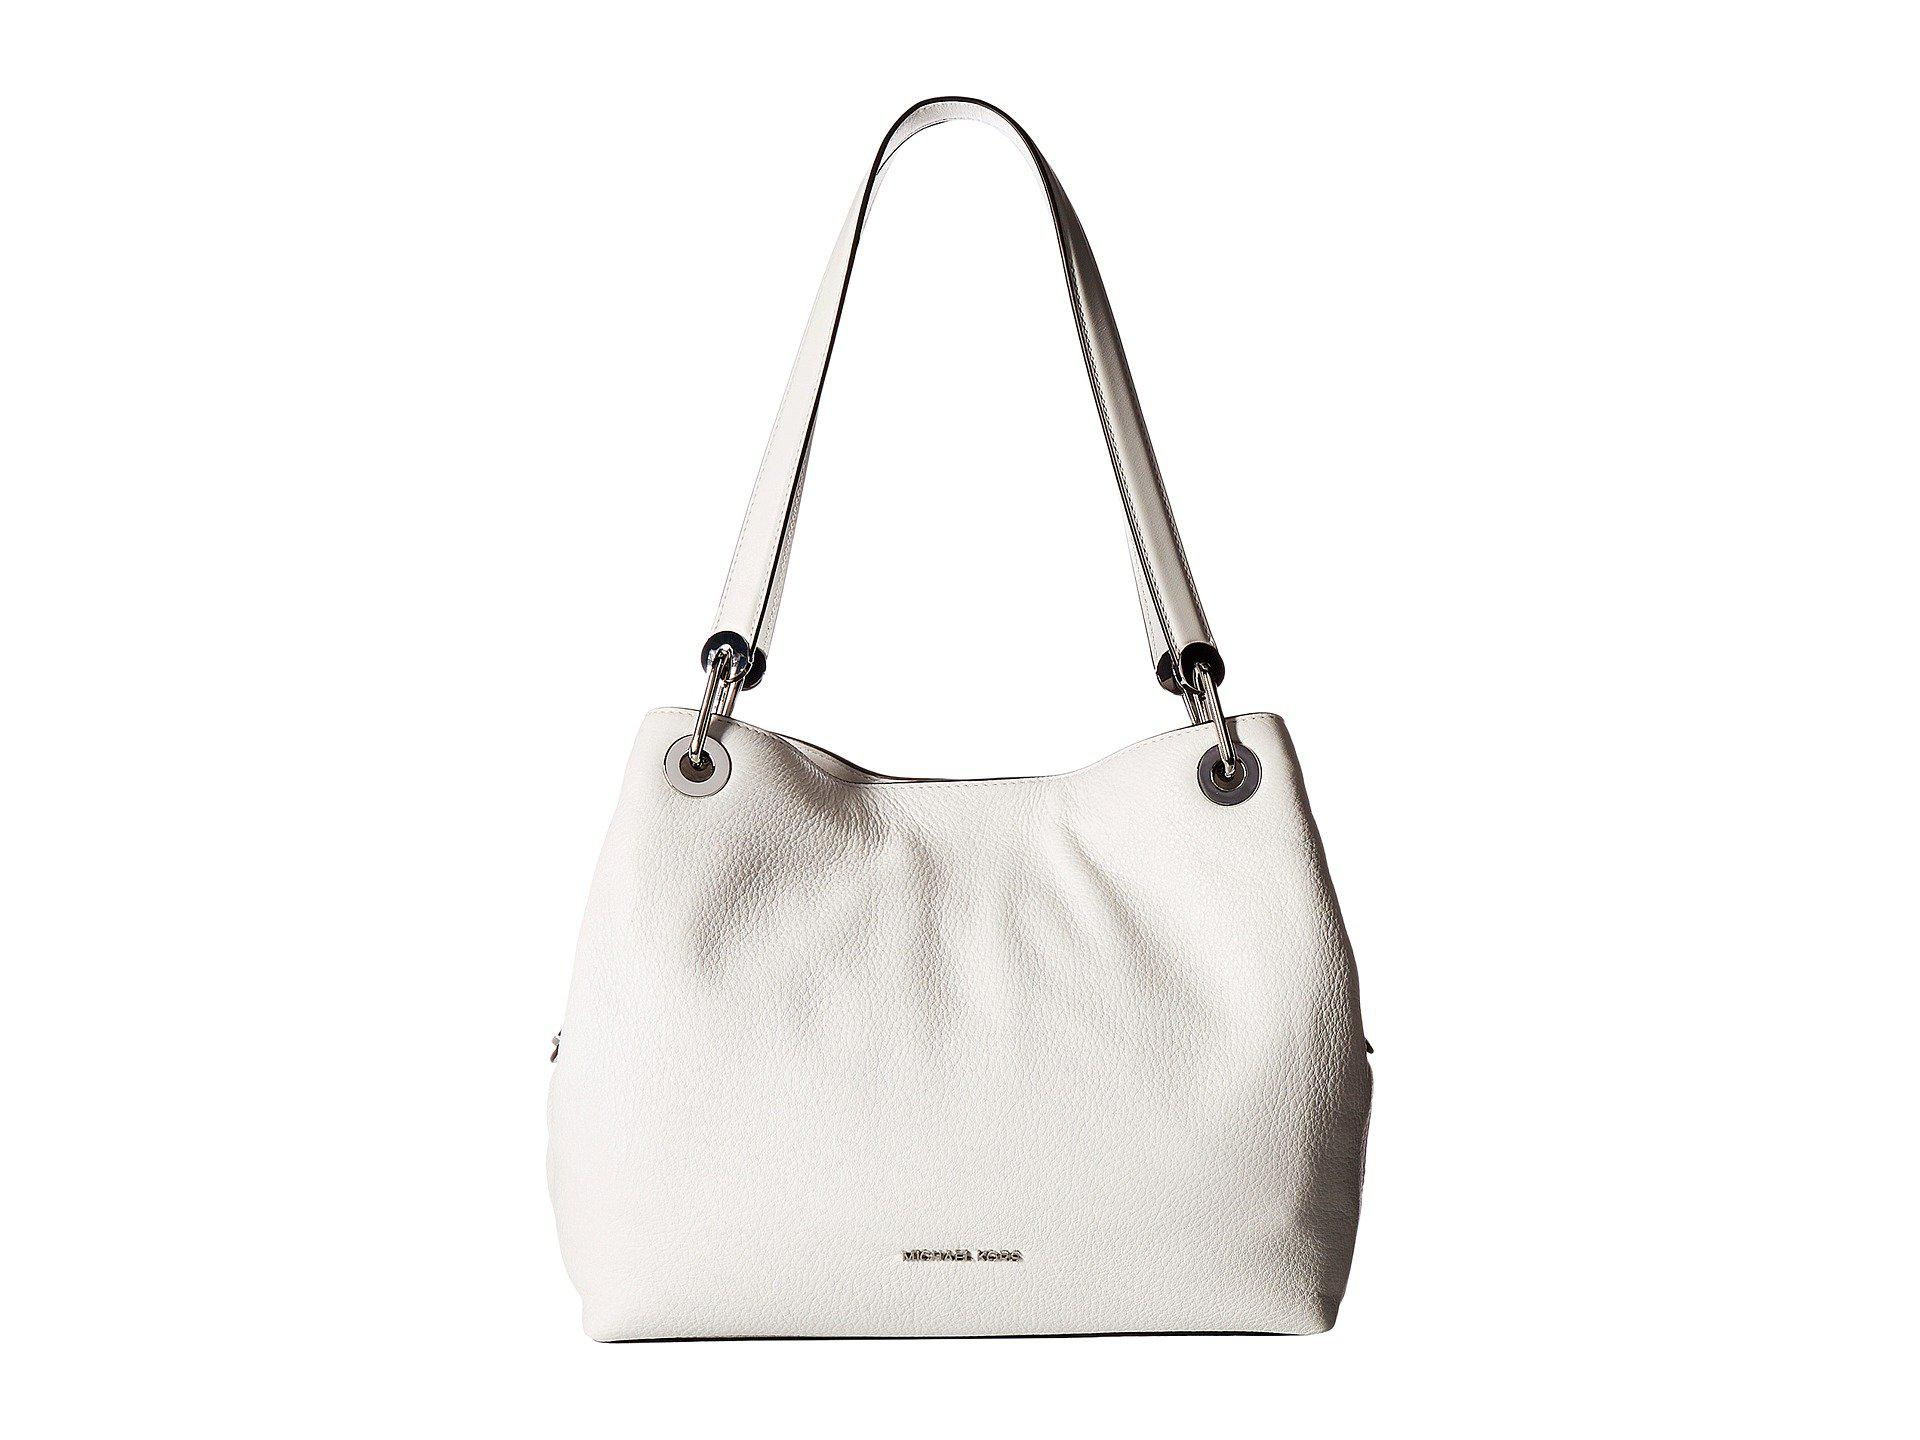 Raven Large Shoulder Tote Bag in Optic White Small Pebble Leather Michael Michael Kors 2zzi3